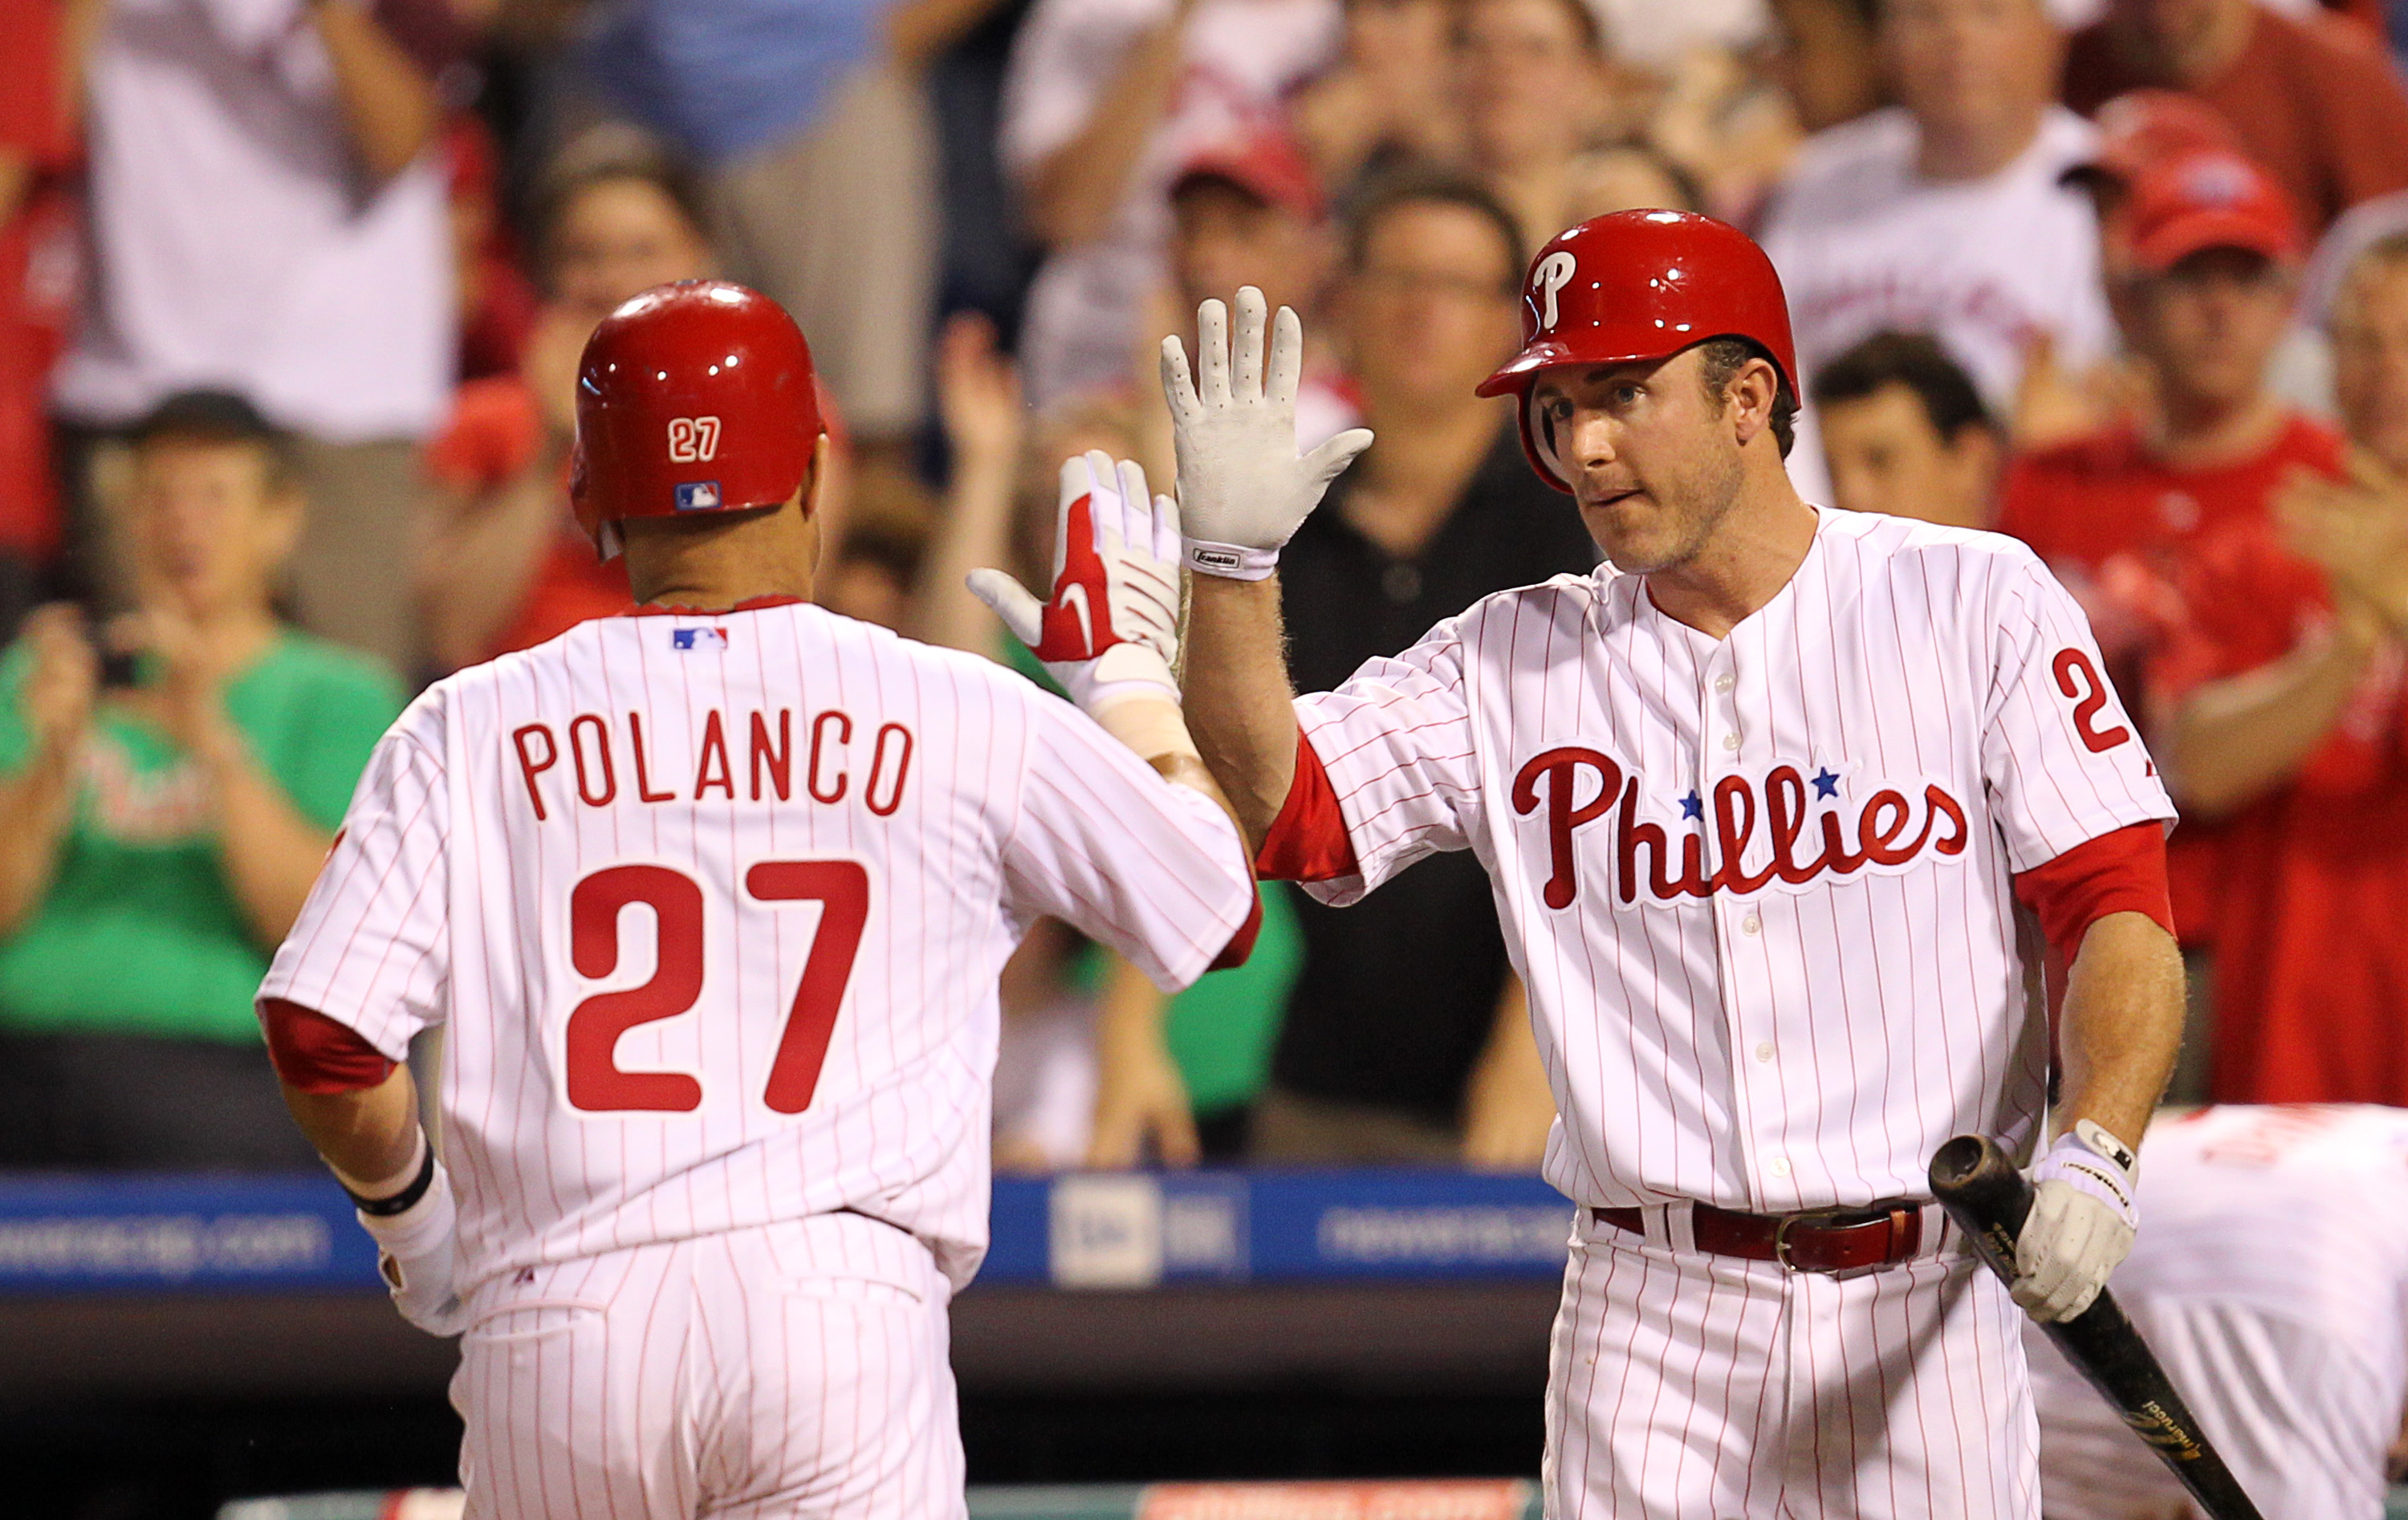 PHILADELPHIA - MAY 2: Third baseman Placido Polanco #27 is greeted by second baseman Chase Utley #26 of the Philadelphia Phillies after hitting a home run during a game against the New York Mets at Citizens Bank Park on May 2, 2010 in Philadelphia, Pennsy